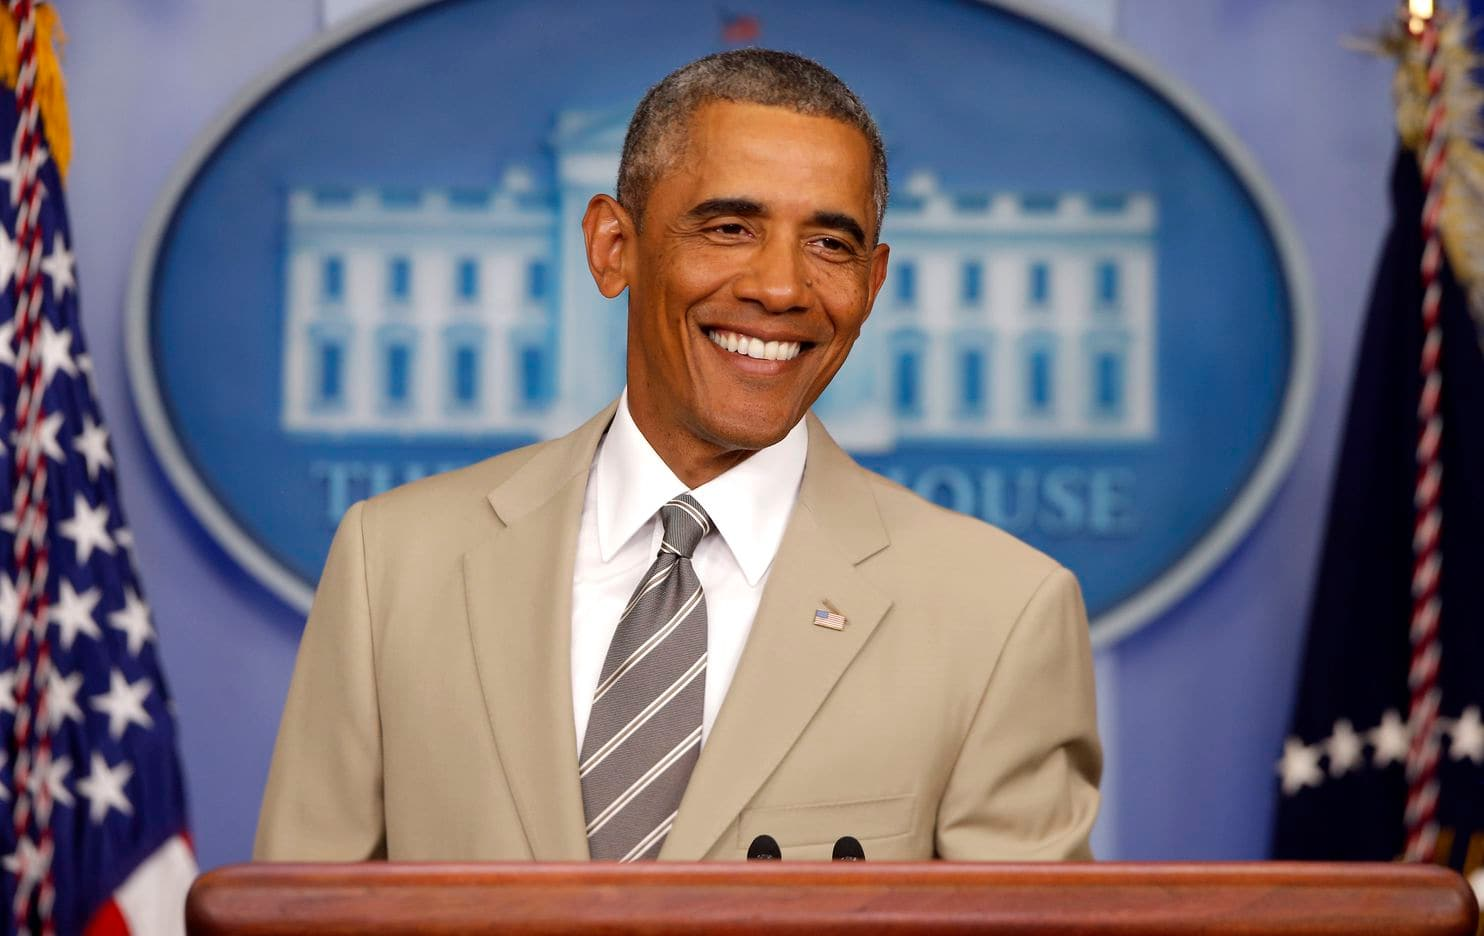 Obama in Tan Suit.jpg